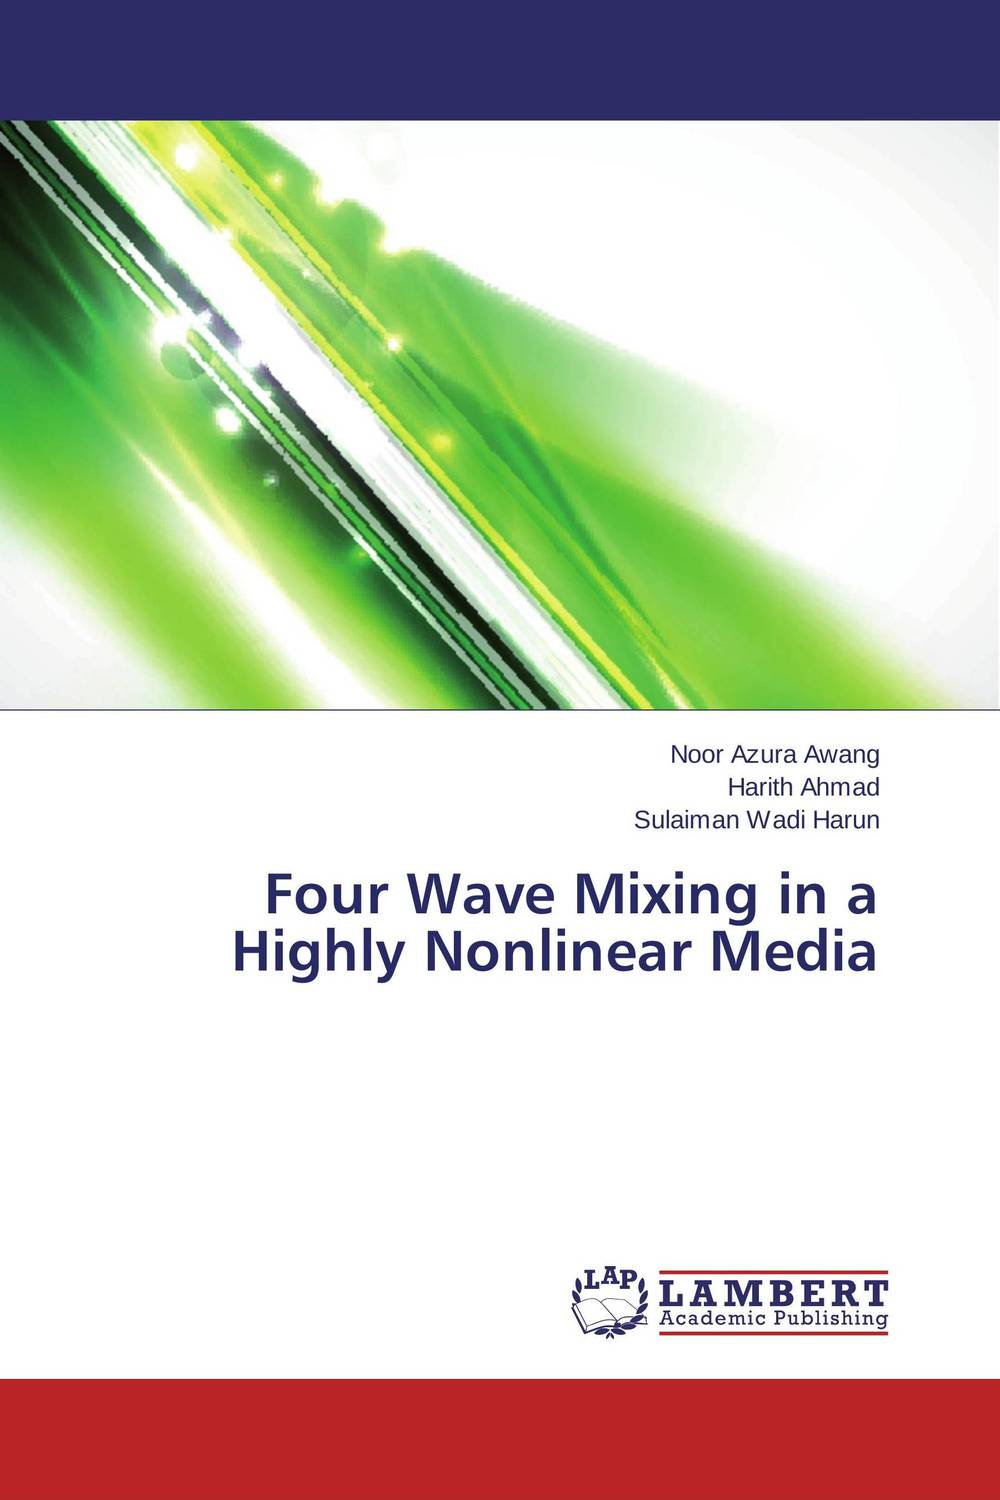 Four Wave Mixing in a Highly Nonlinear Media mahmoud m ragab nazmi a mohammed and moustafa h aly wavelength conversion using nonlinear effects in optical fibers